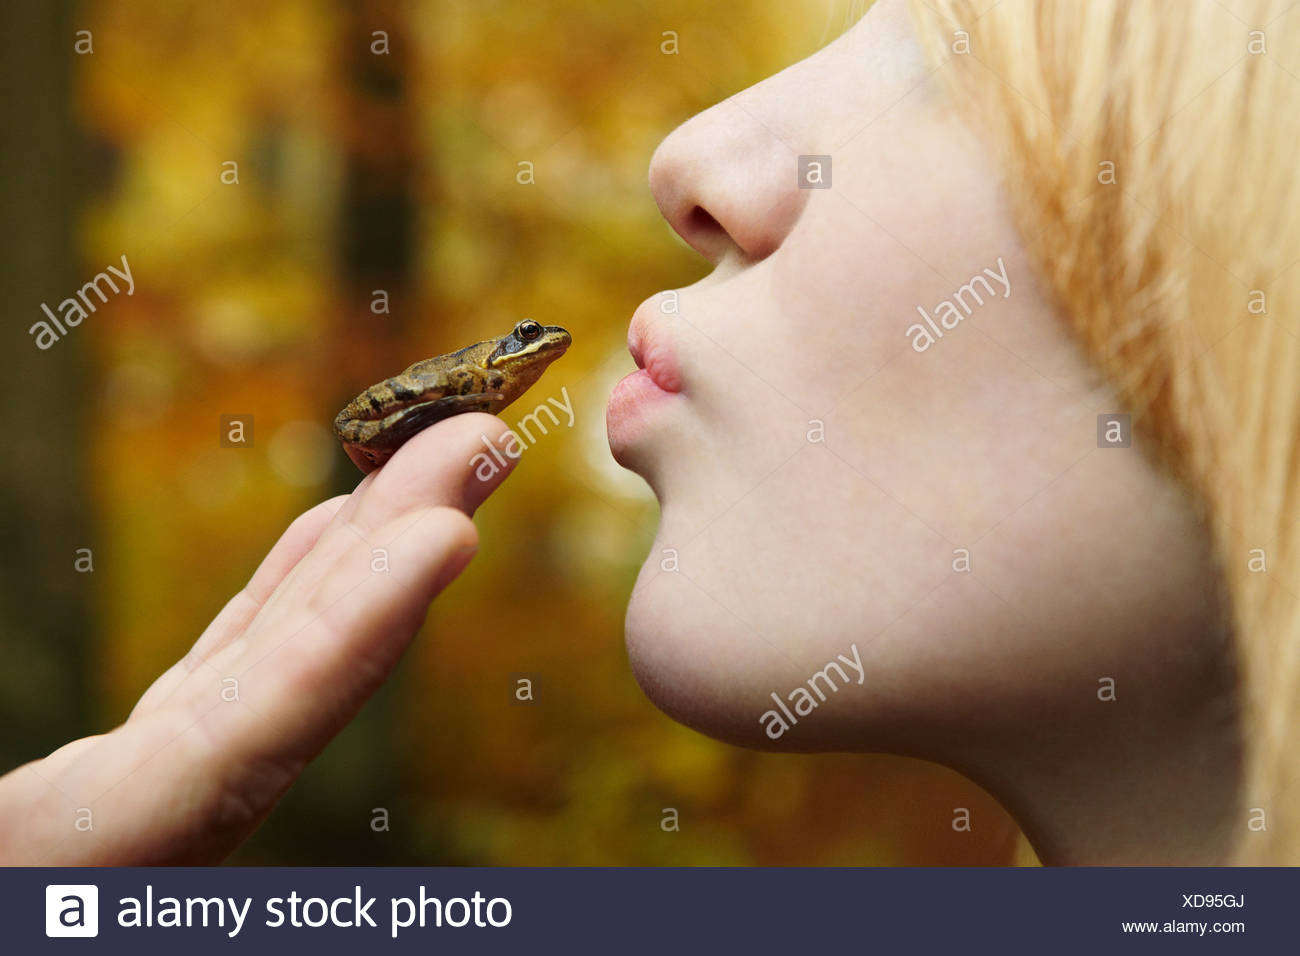 Petite grenouille Girl kissing in forest Photo Stock